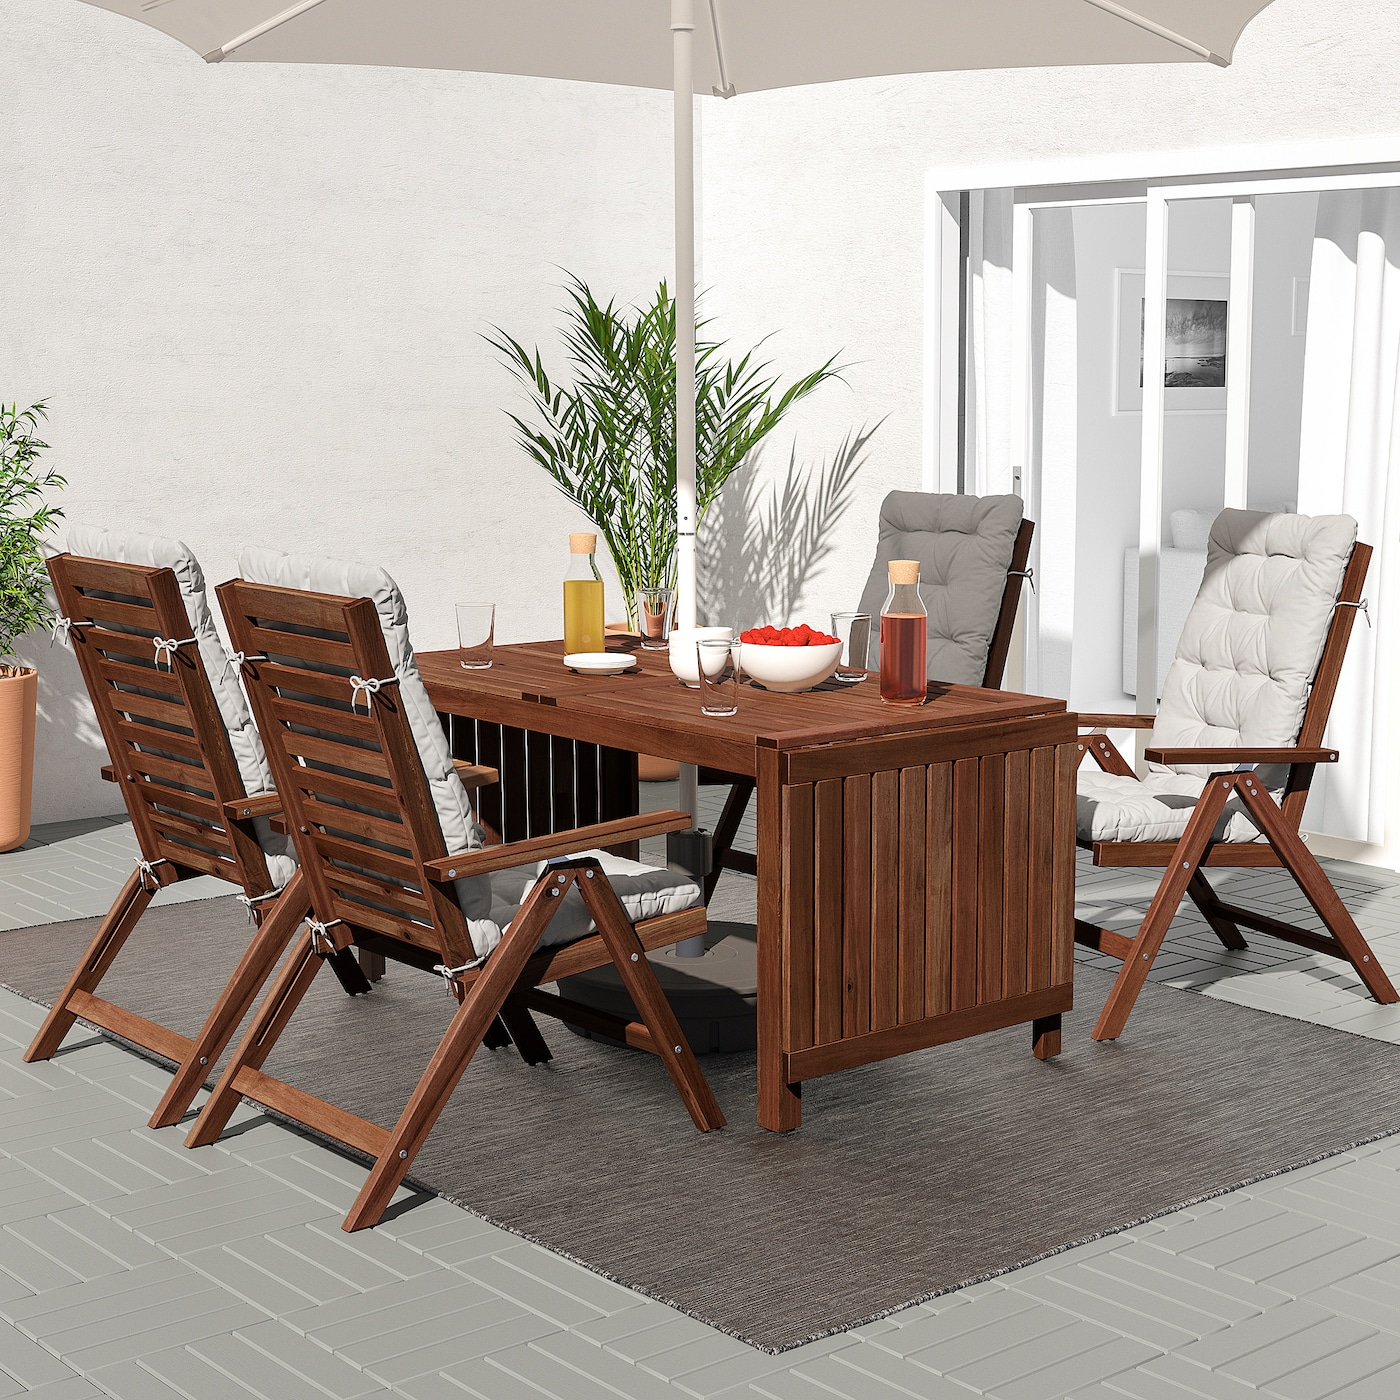 ÄPPLARÖ Table + 10 reclining chairs, outdoor - brown stained/Kuddarna gray